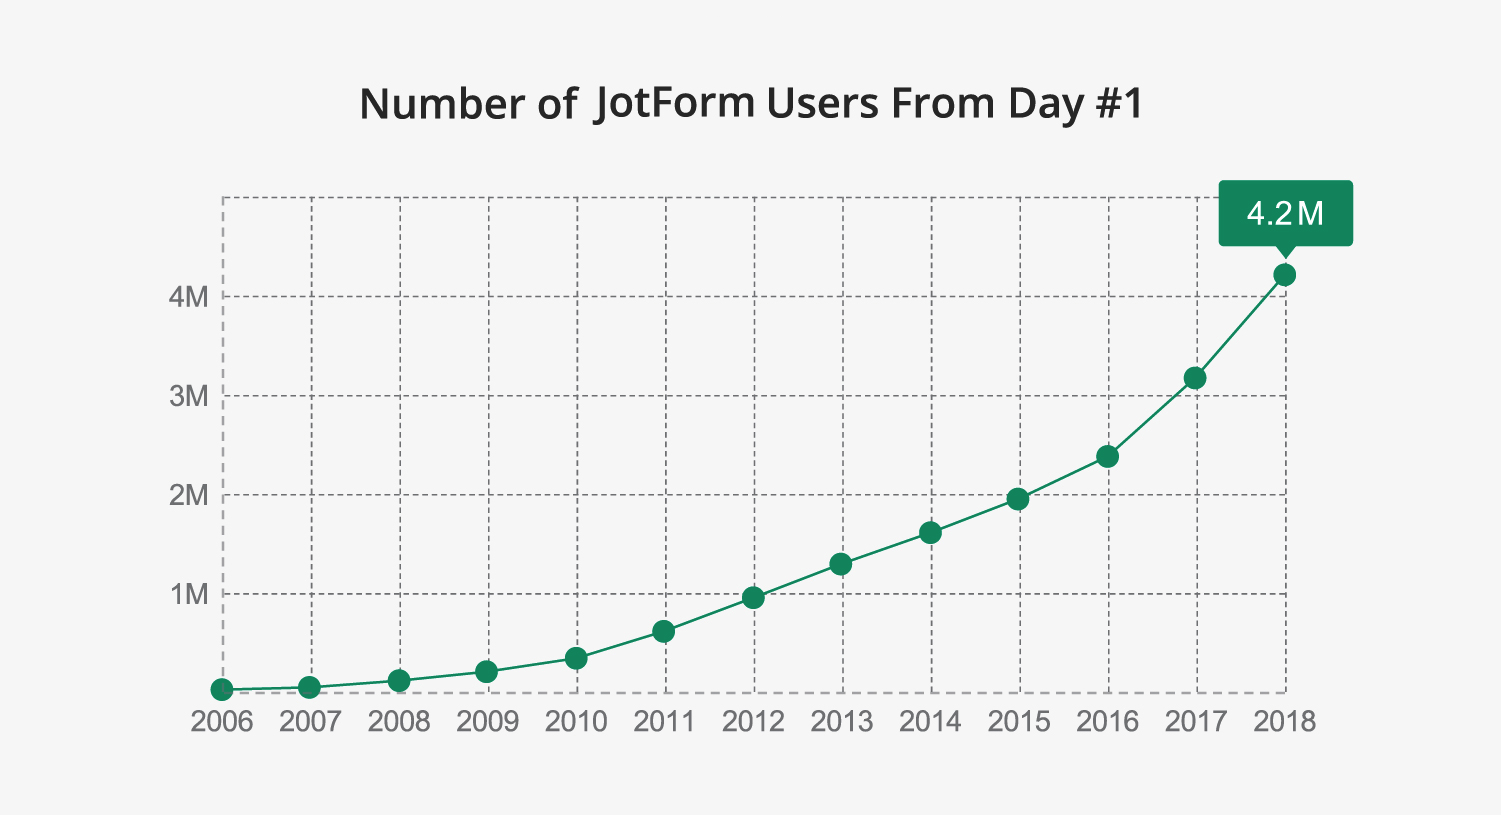 Number of JotForm users over years